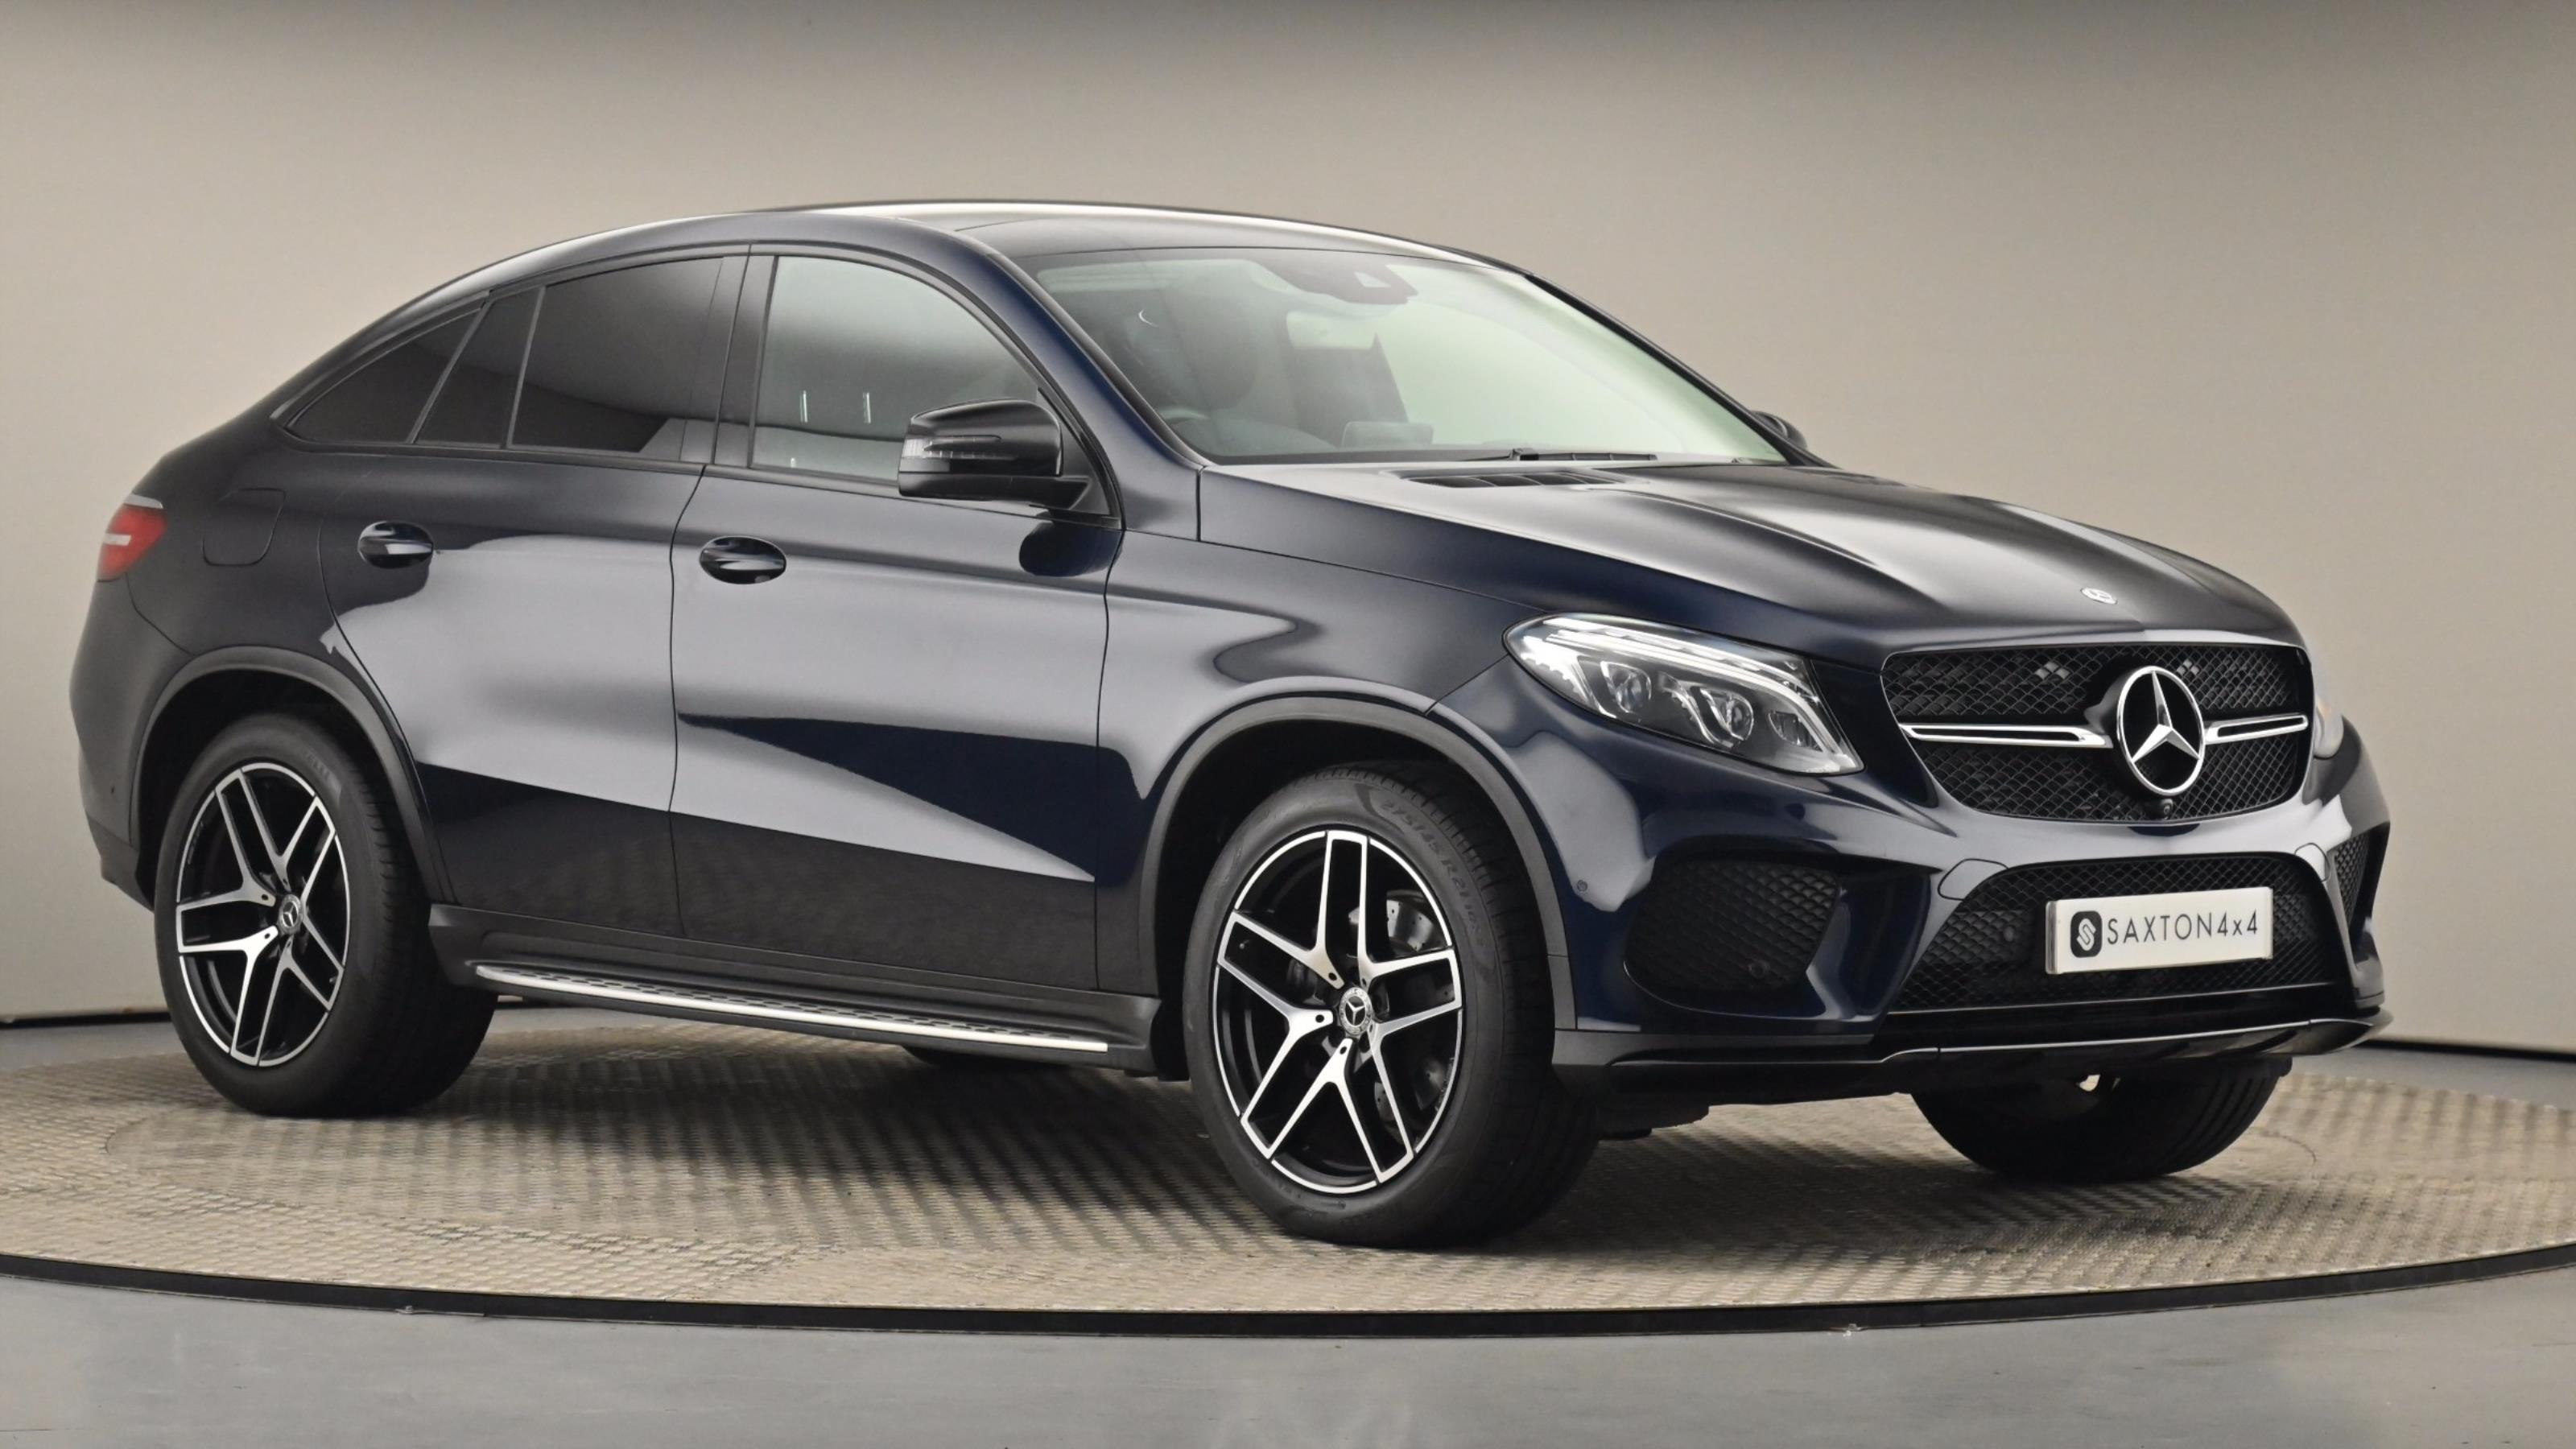 Used 2017 Mercedes-Benz GLE COUPE GLE 350d 4Matic AMG Line Premium 5dr 9G-Tronic BLUE at Saxton4x4